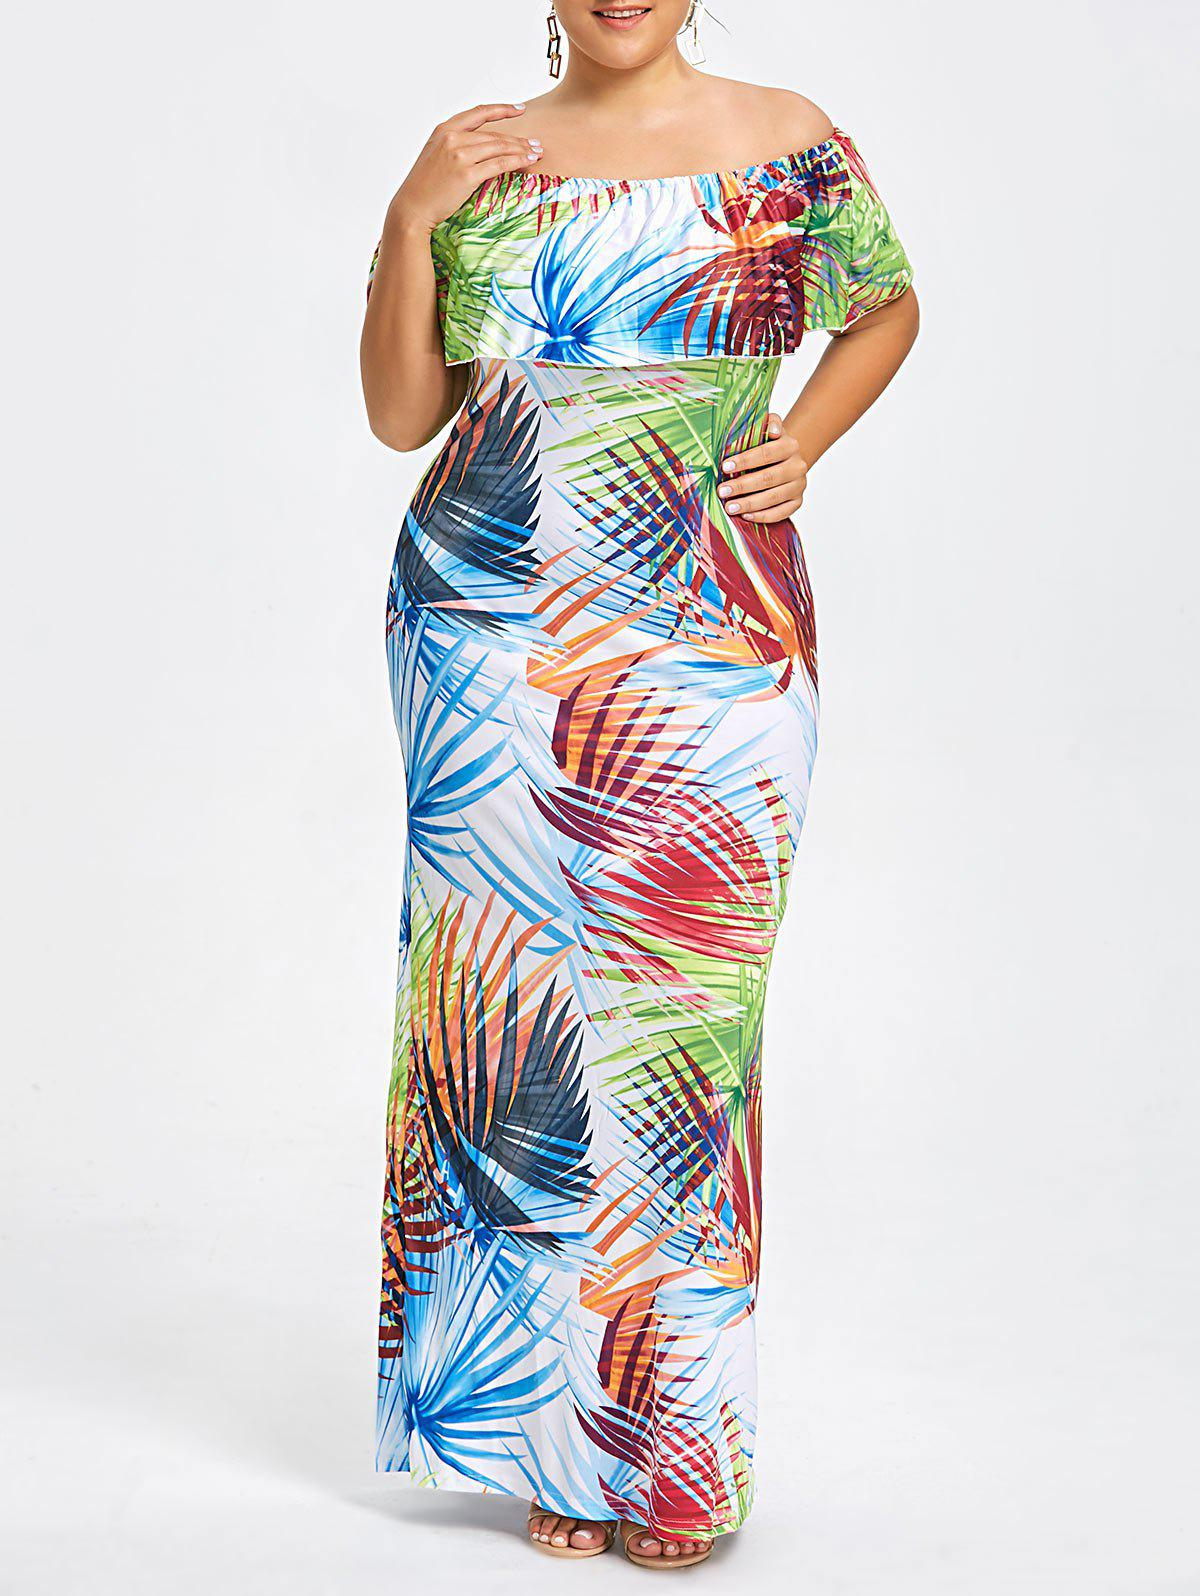 Plus Size Palm Print Off The Shoulder DressWOMEN<br><br>Size: 5XL; Color: COLORMIX; Style: Casual; Material: Cotton,Polyester; Silhouette: Sheath; Dresses Length: Floor-Length; Neckline: Off The Shoulder; Sleeve Length: Short Sleeves; Pattern Type: Print; With Belt: No; Season: Fall,Spring,Summer; Weight: 0.3800kg; Package Contents: 1 x Dress;